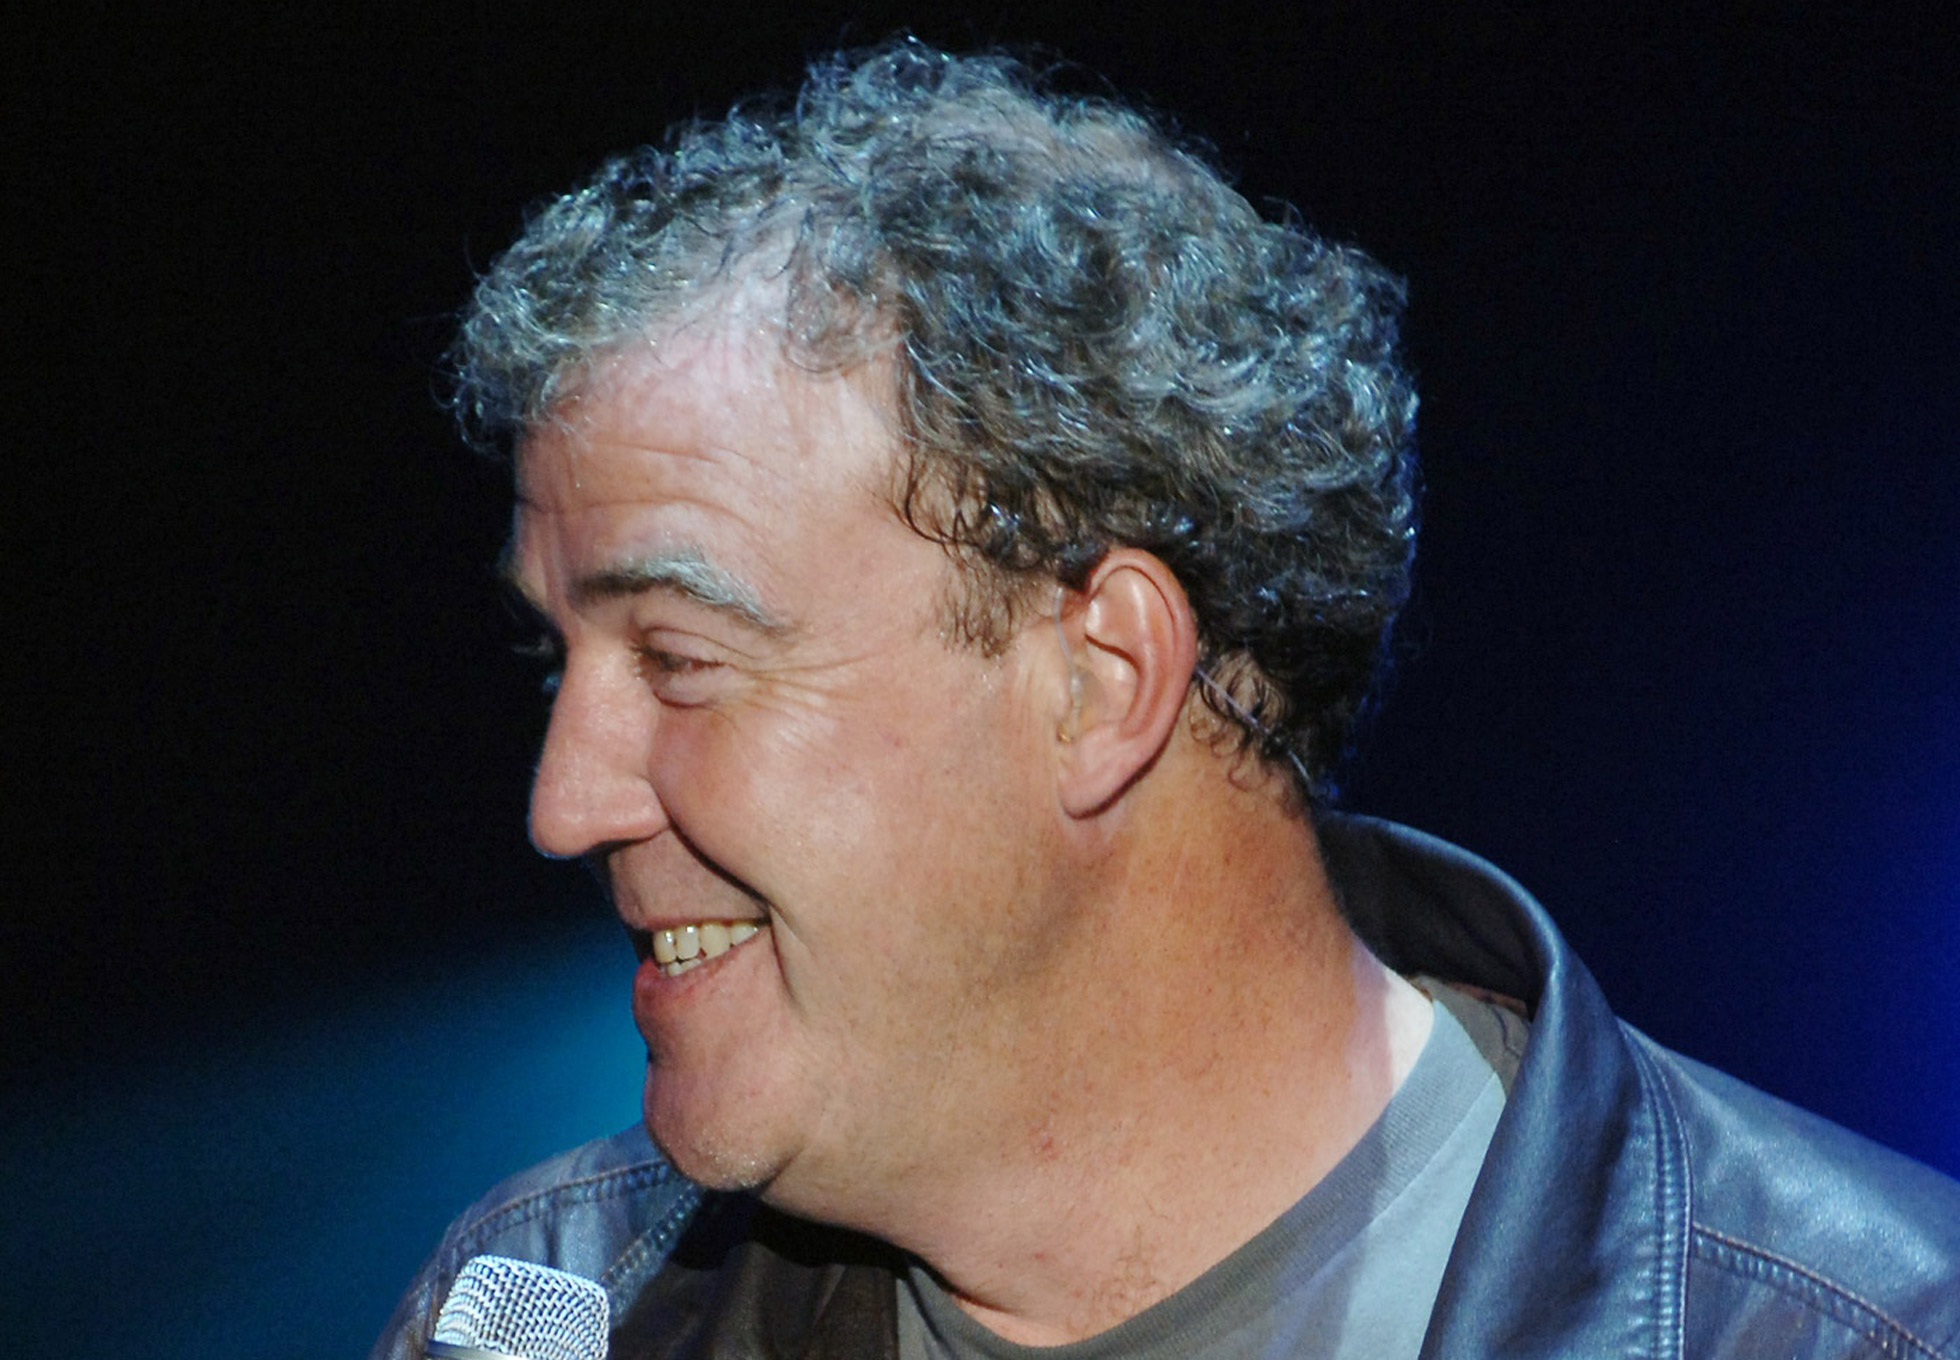 The Jeremy Clarkson 'fracas' has been one big publicity stunt